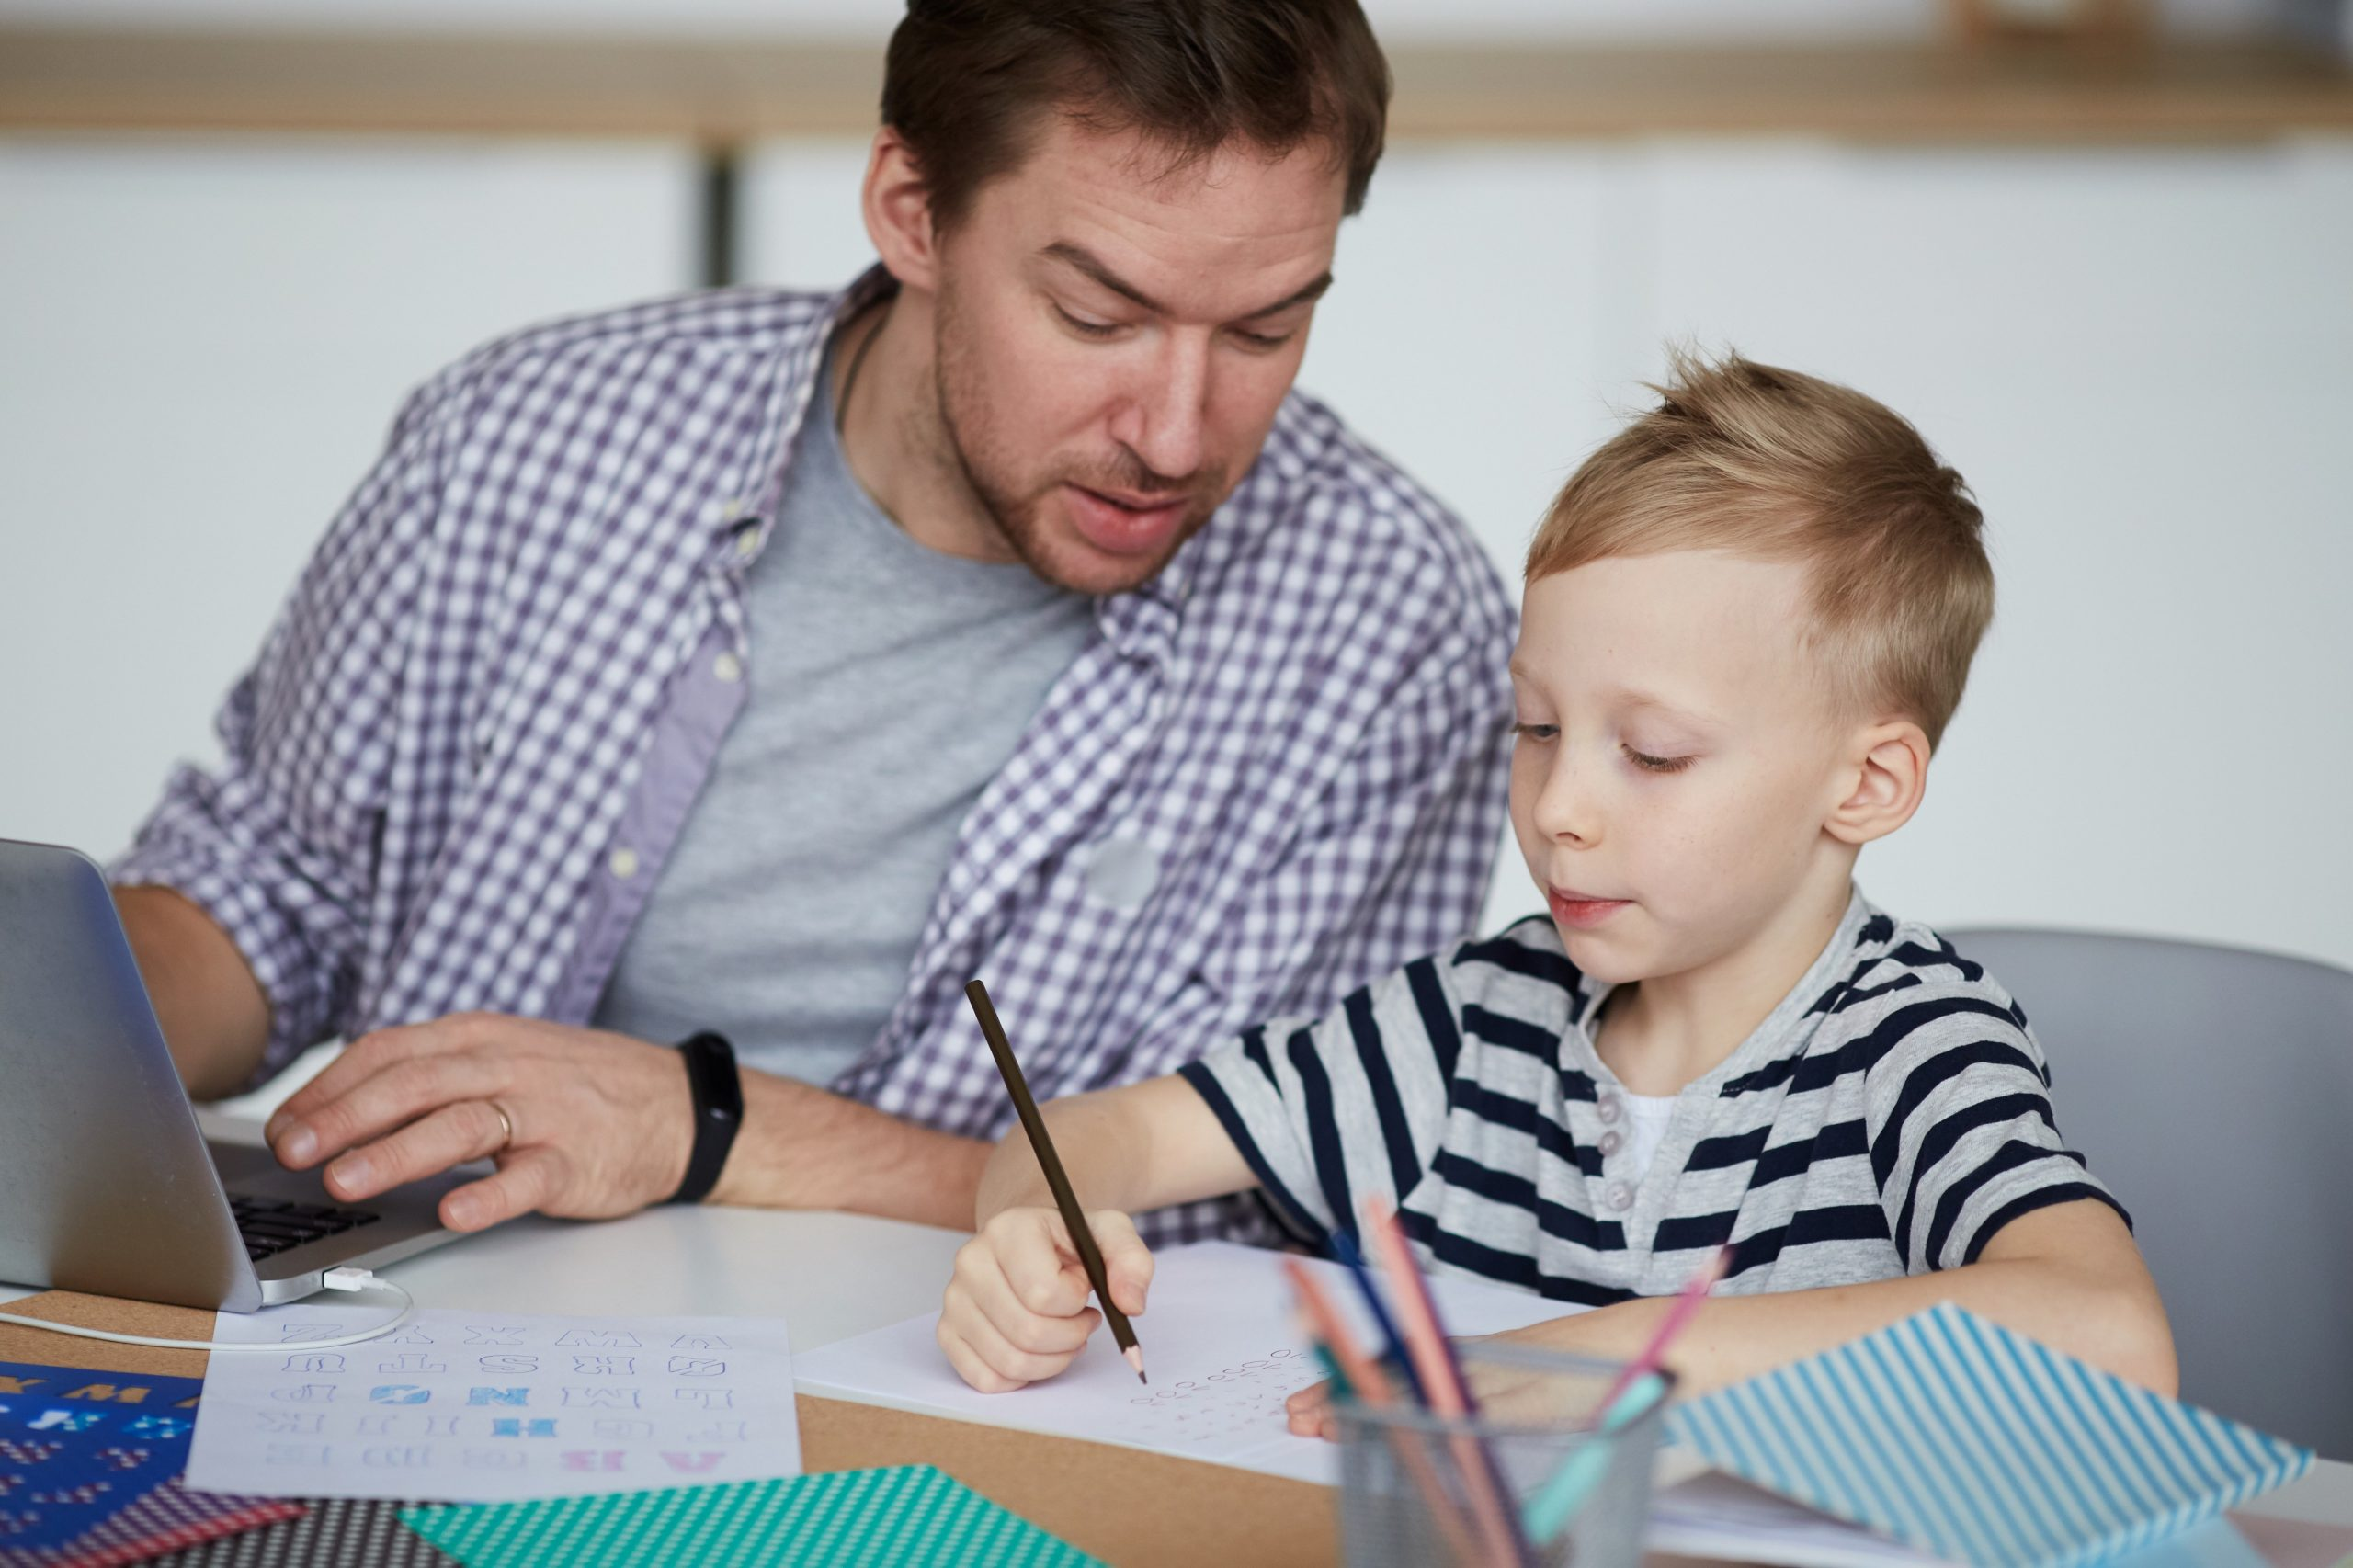 The Benefits And Drawbacks Of Homeschooling Children